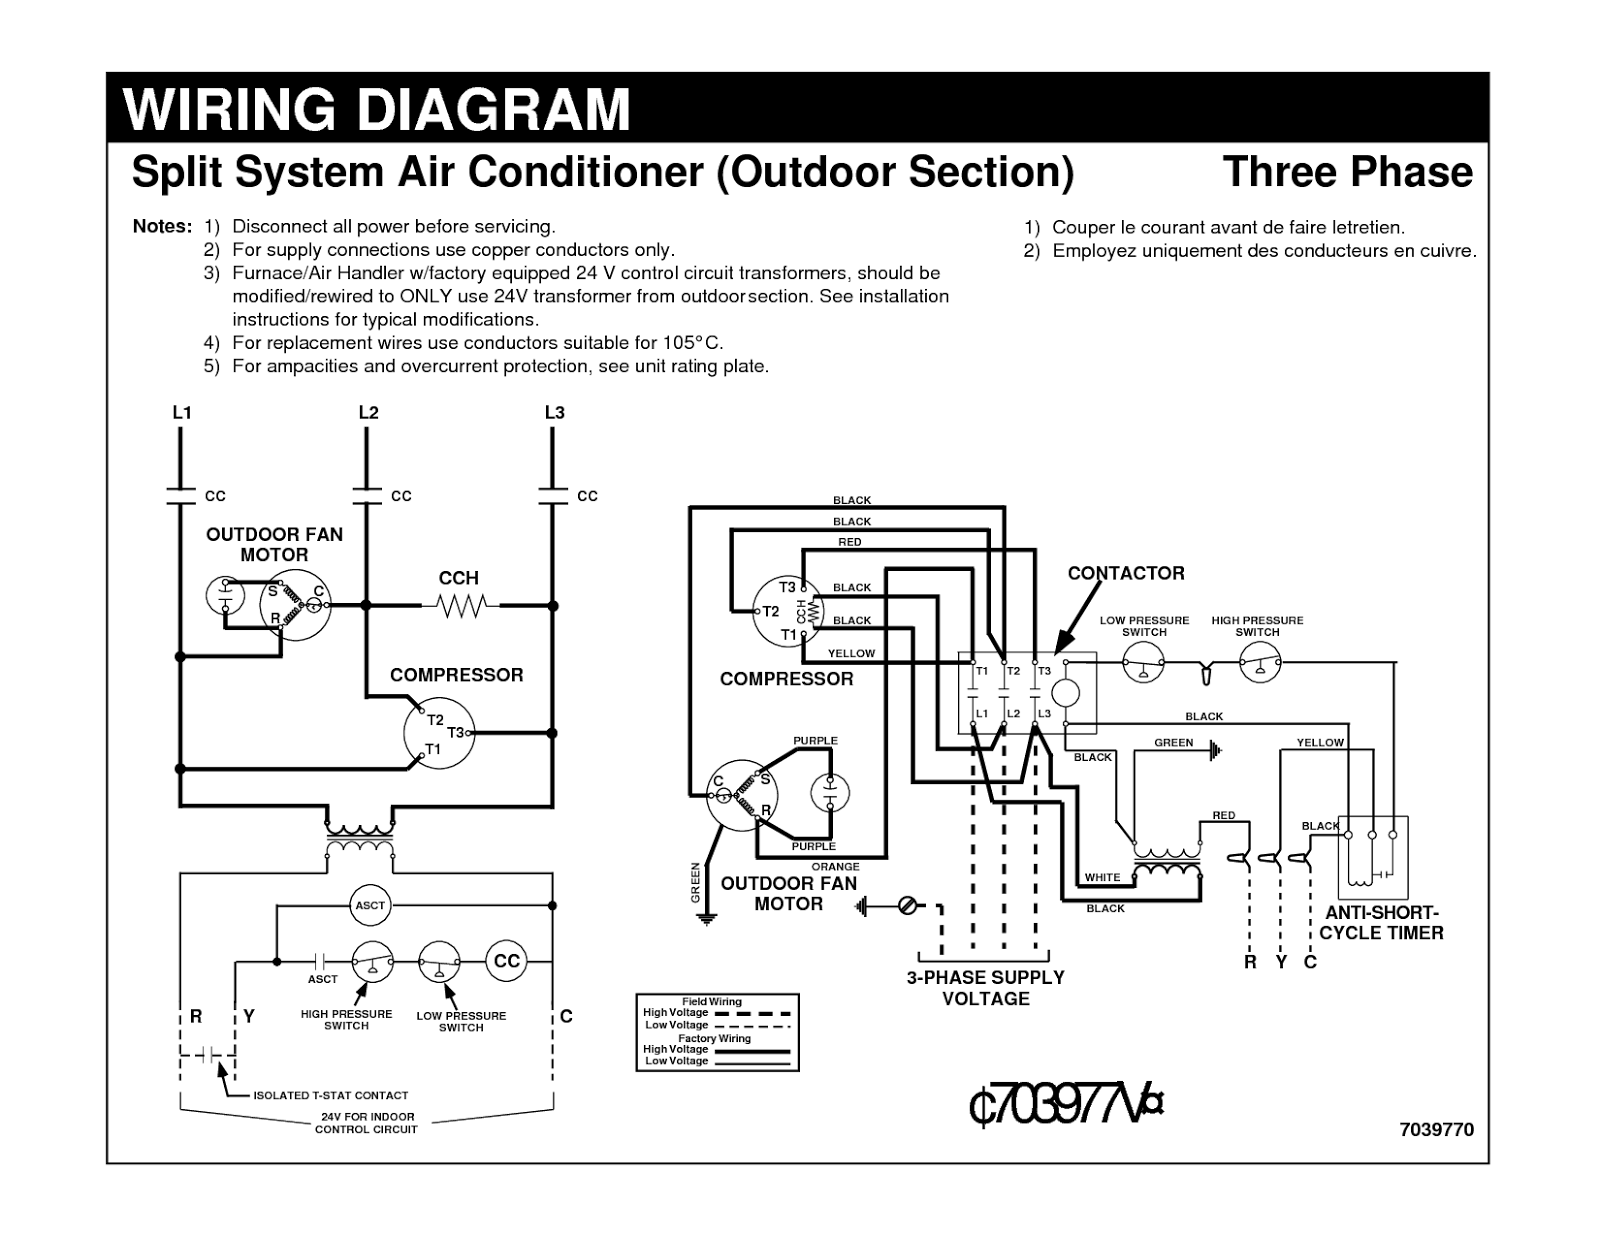 Electrical Wiring Diagrams For Air Conditioning Systems – Part One